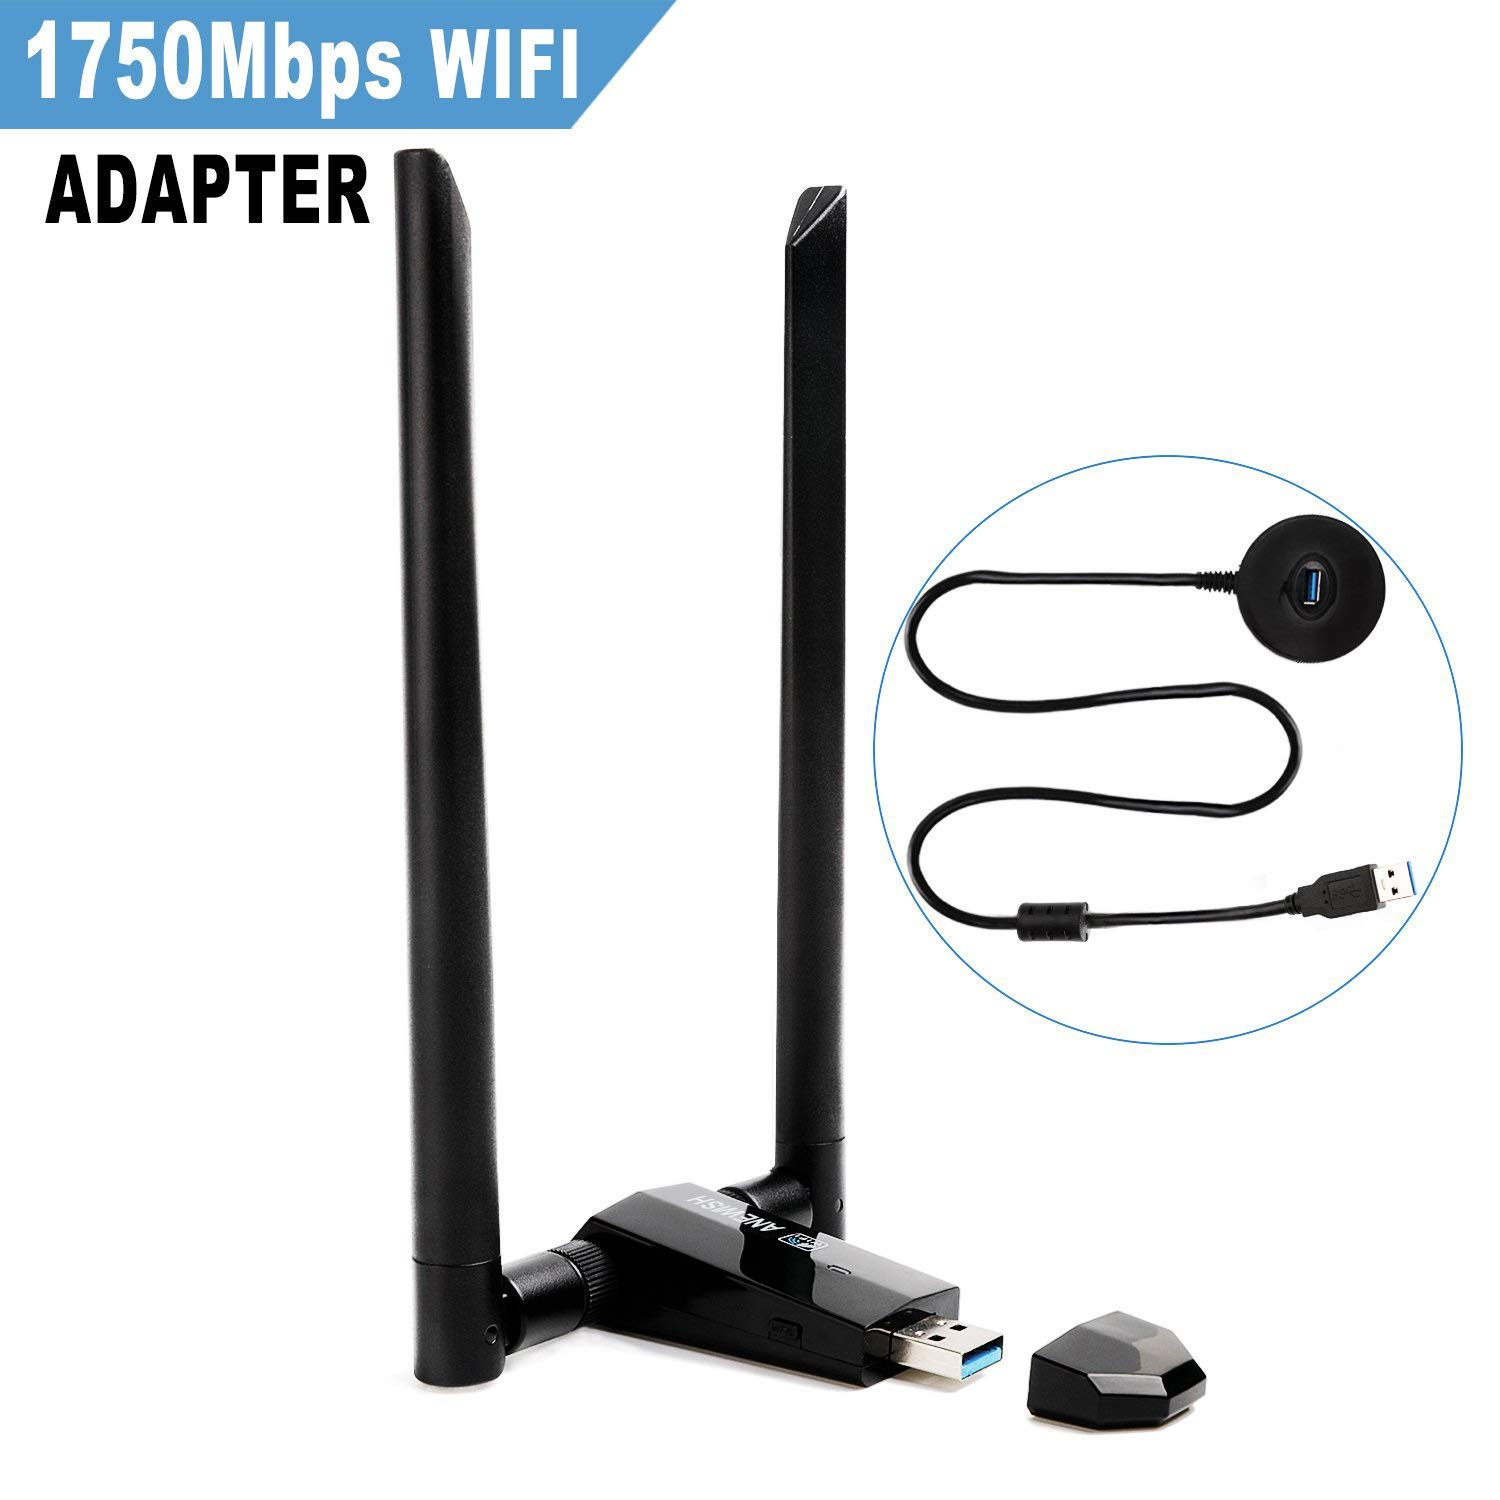 USB 3 0 Dual Band 2 4G 450M 5G 1300M 802 11ac Wifi Adapter dongle 1750Mbps  2 Antennas Wireless Network adapter for PC/Laptop/Desktop/Tablet Supports